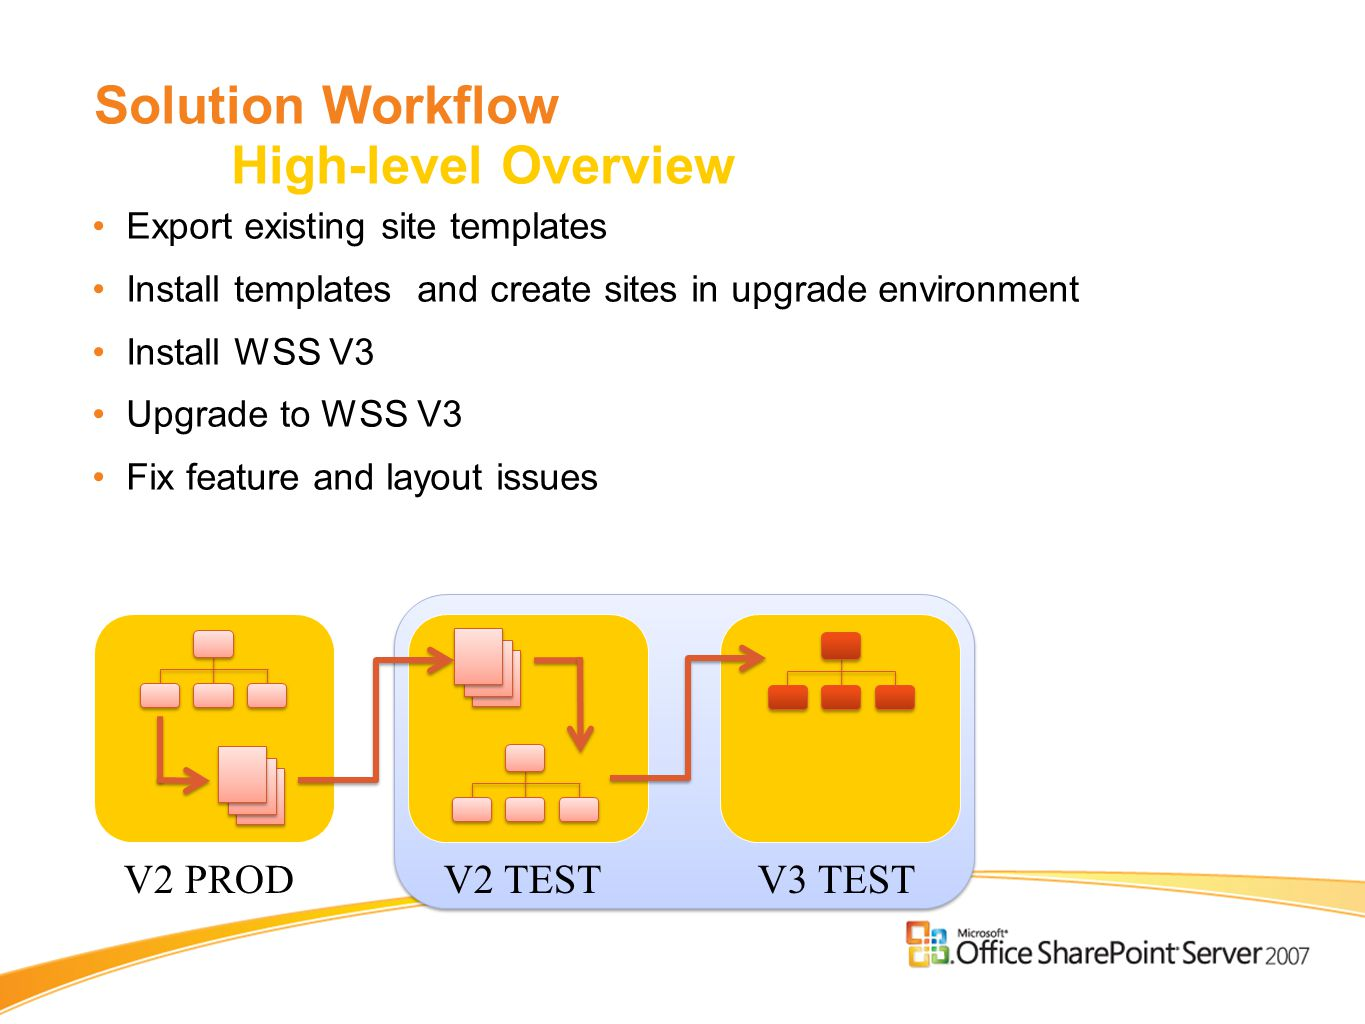 Solution Workflow High-level Overview Export existing site templates Install templates and create sites in upgrade environment Install WSS V3 Upgrade to WSS V3 Fix feature and layout issues V2 PRODV2 TESTV3 TEST